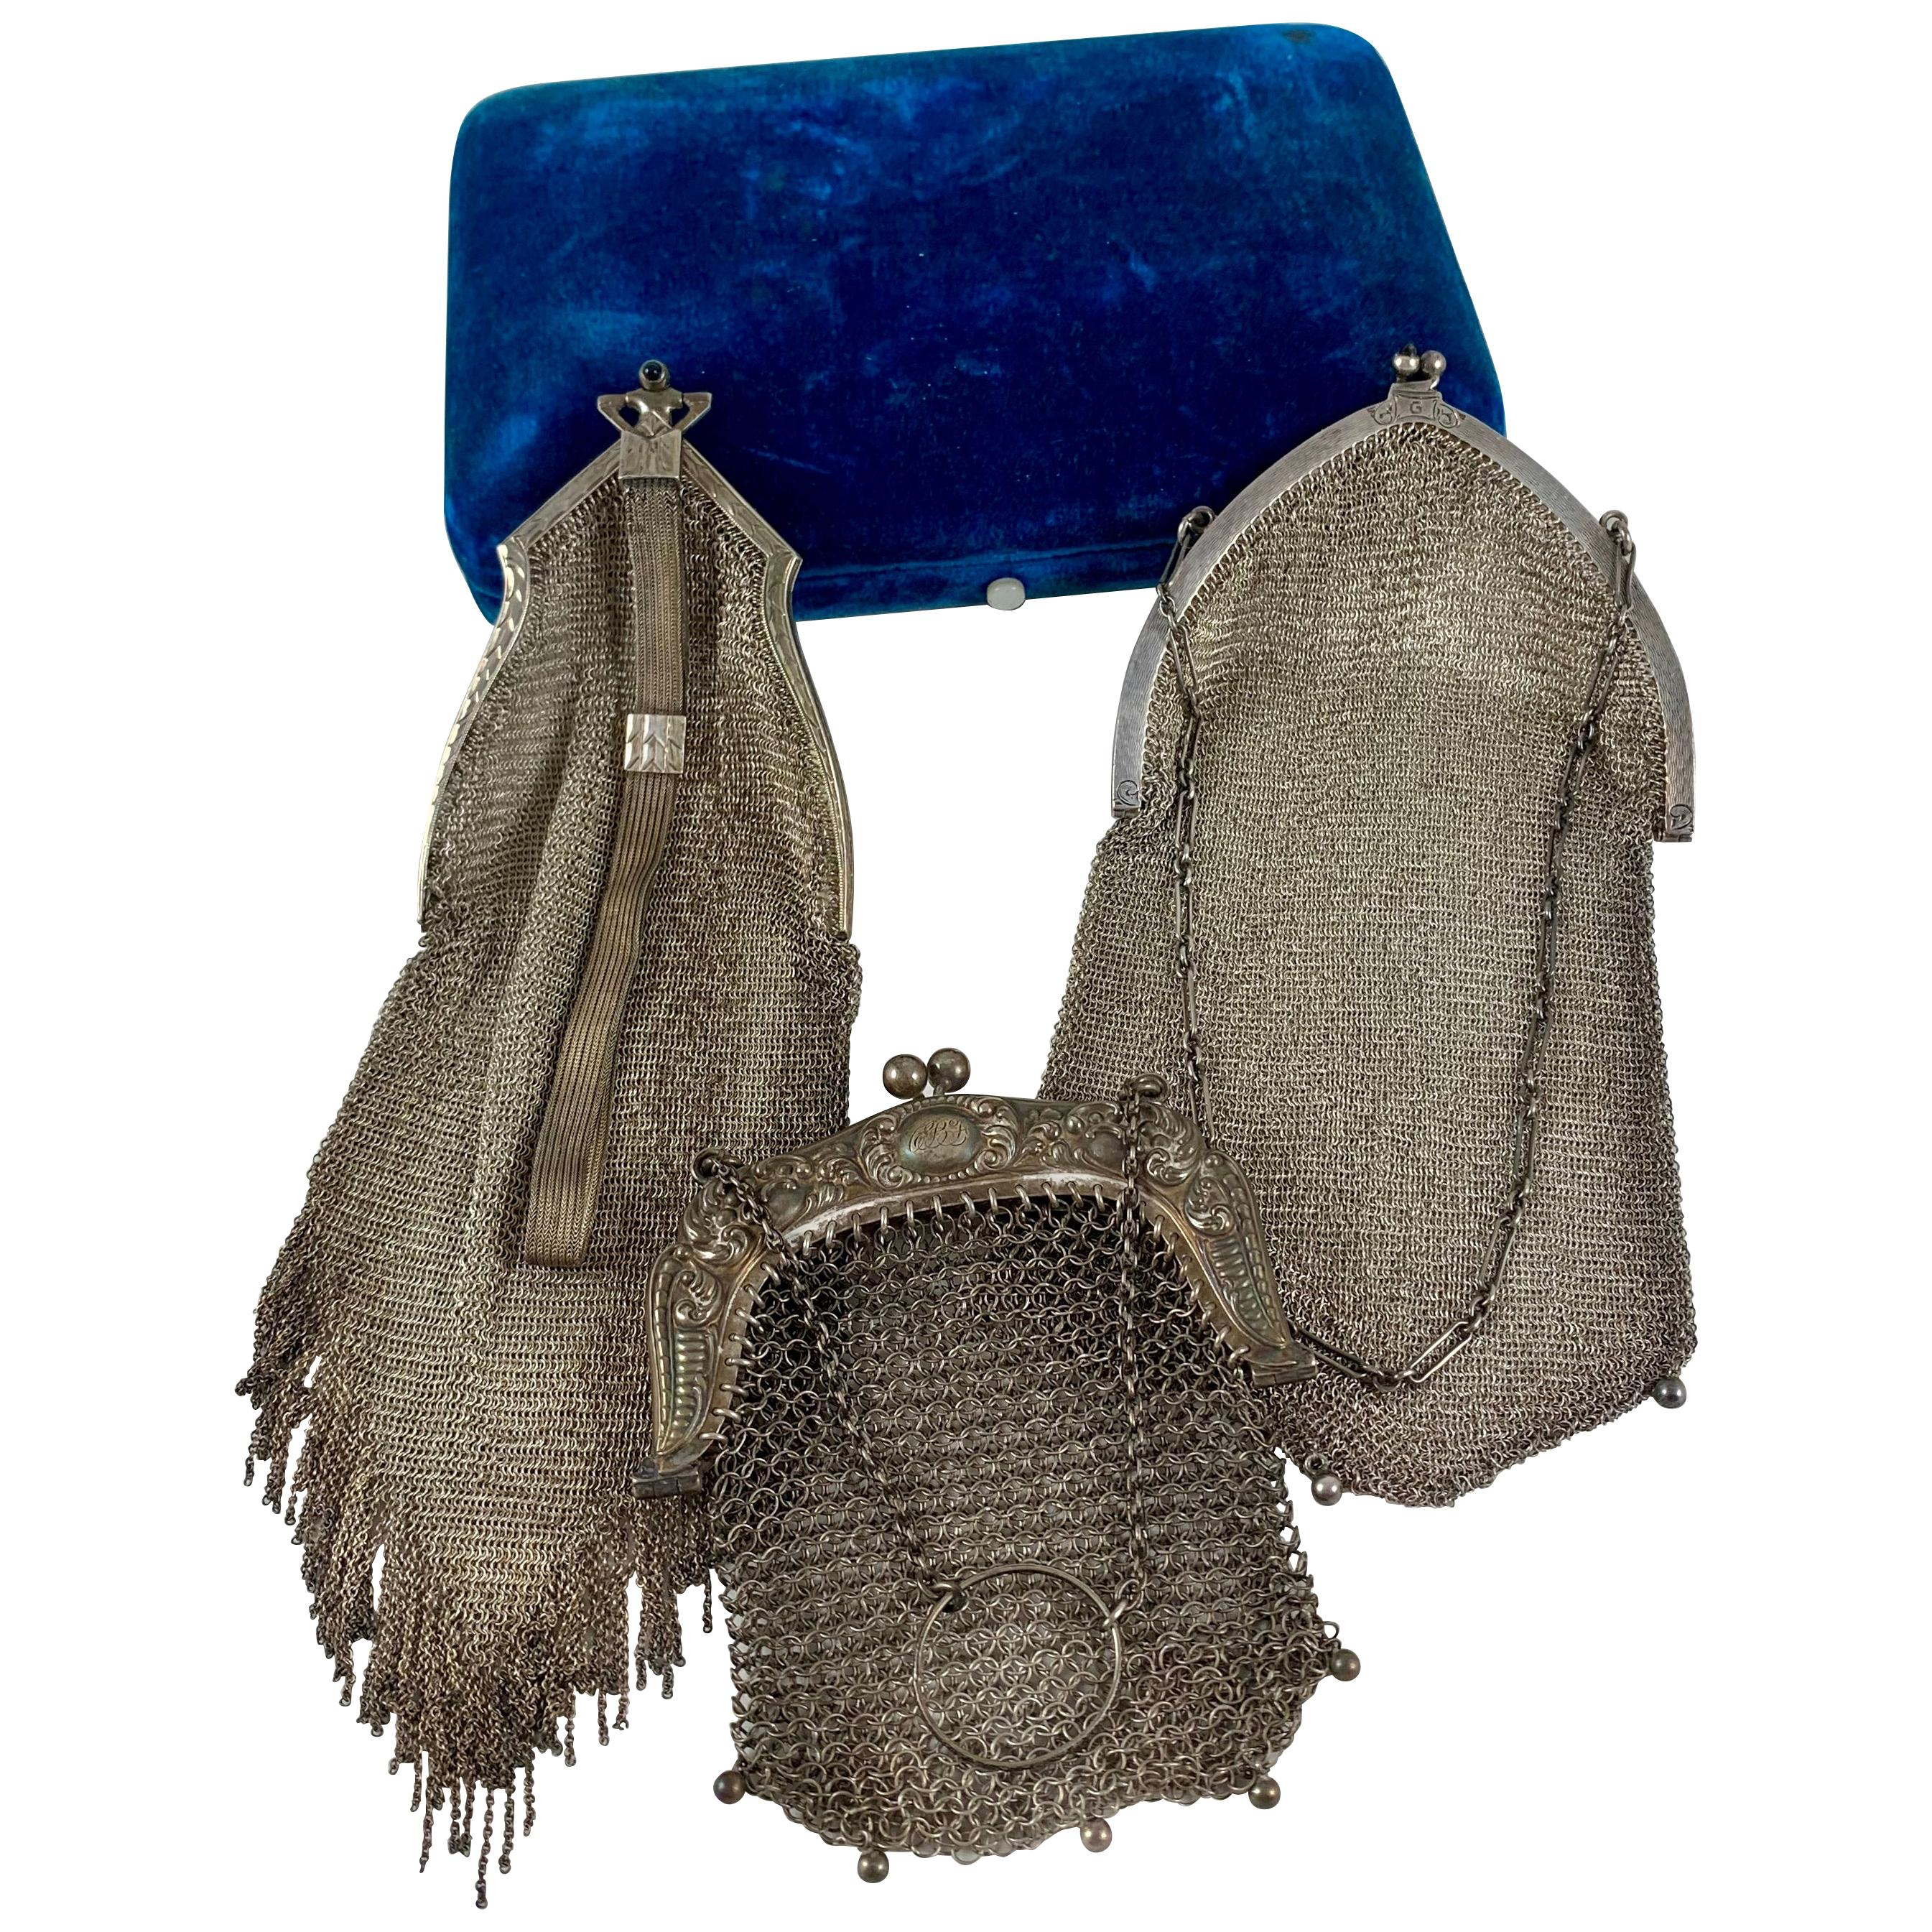 1920s Whiting and Davis Sterling Silver Mesh Art Deco Evening Bags, Group of 3